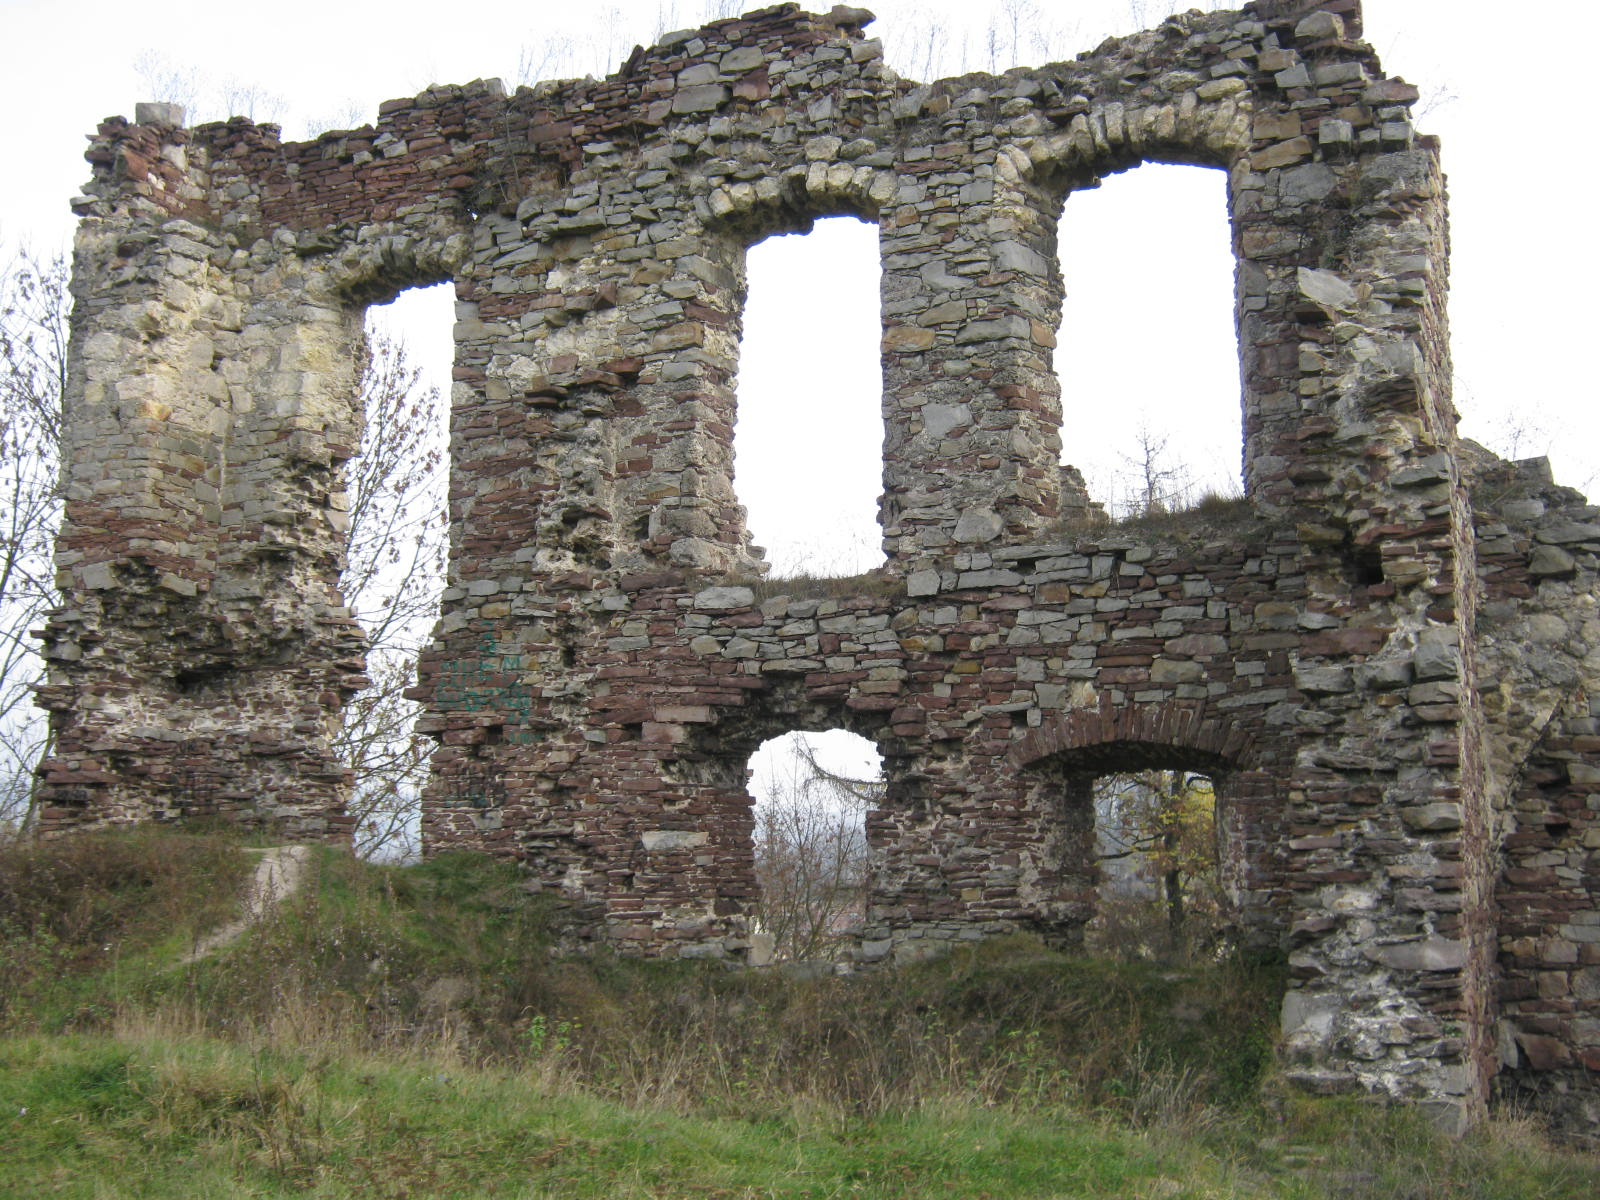 File:Old castle. Ruins of the palace. Buchach.26.10.2013..jpg ...